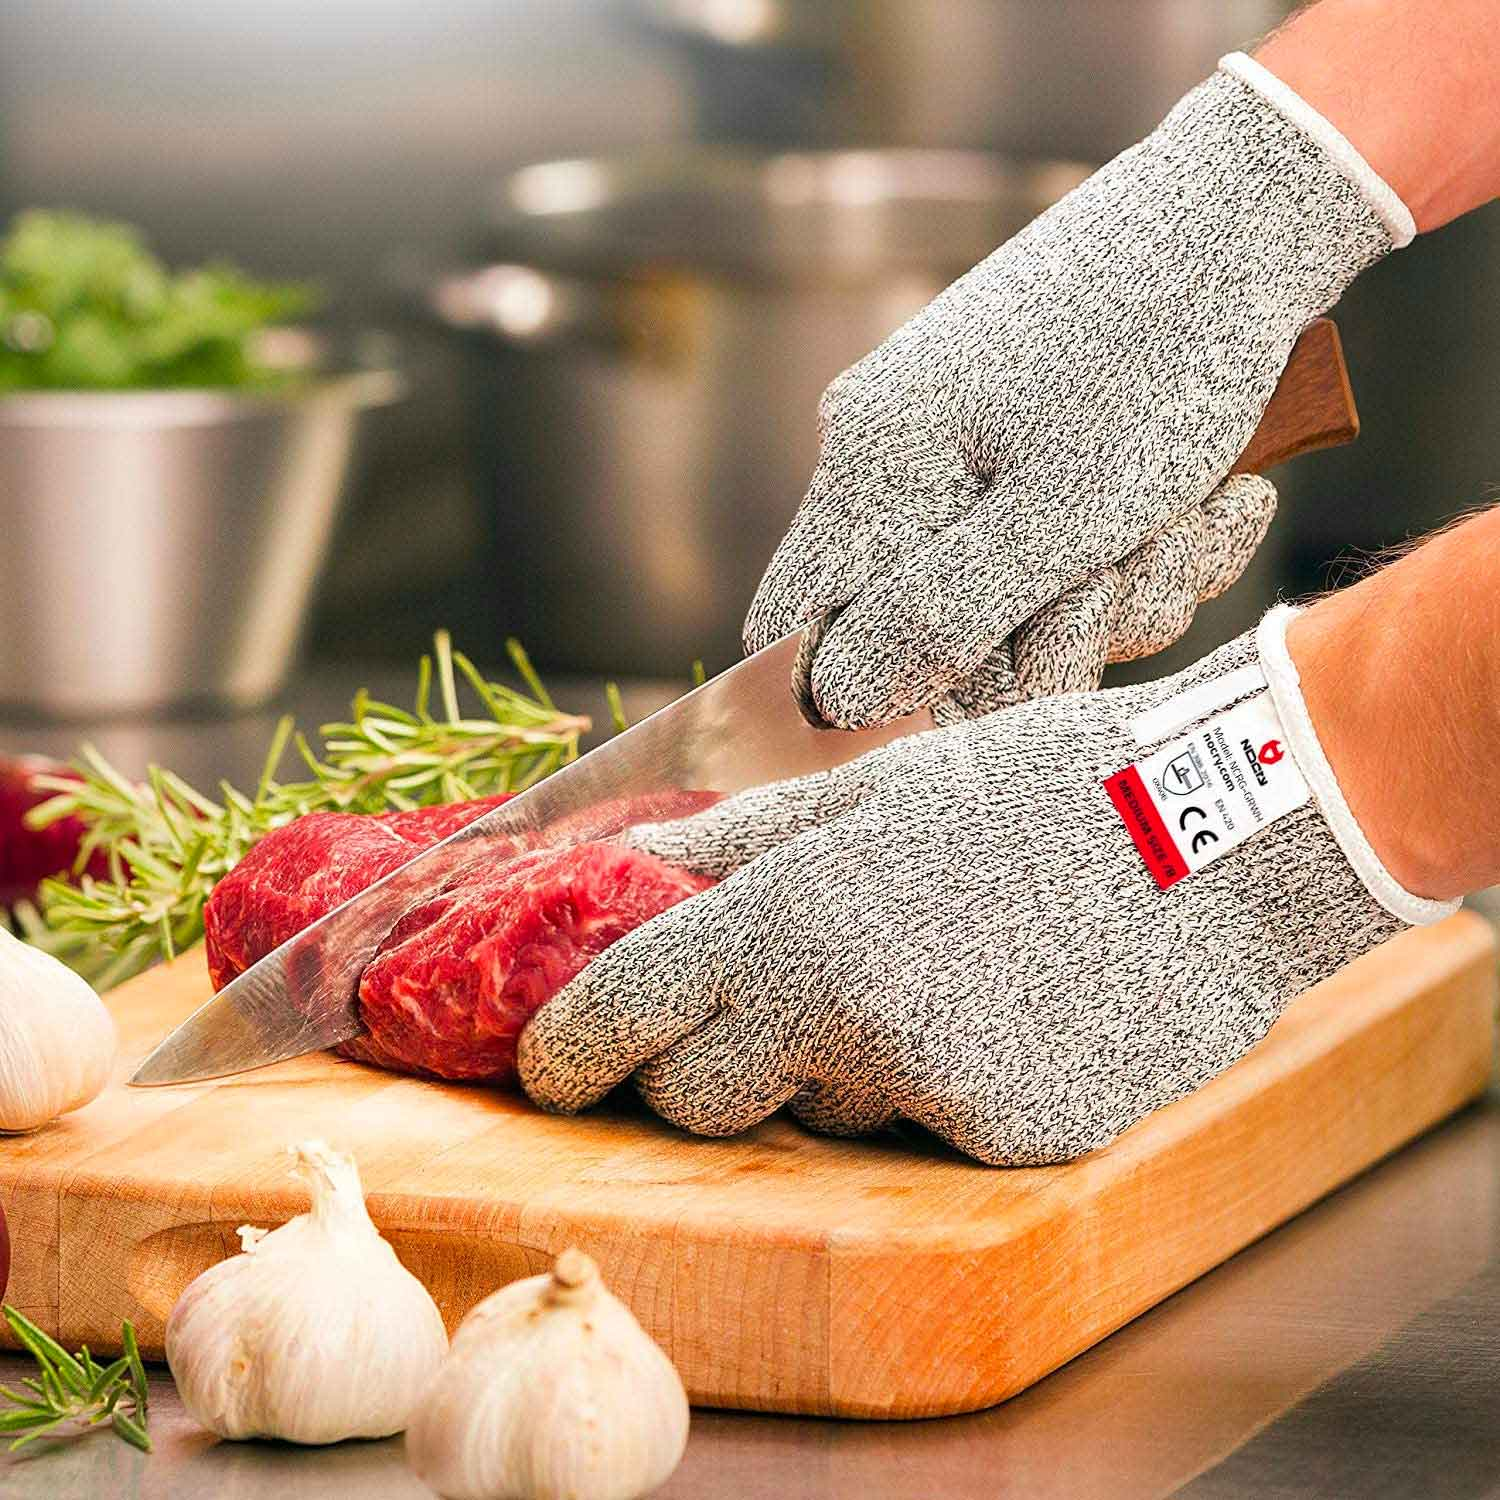 Person using gloves to cut meat